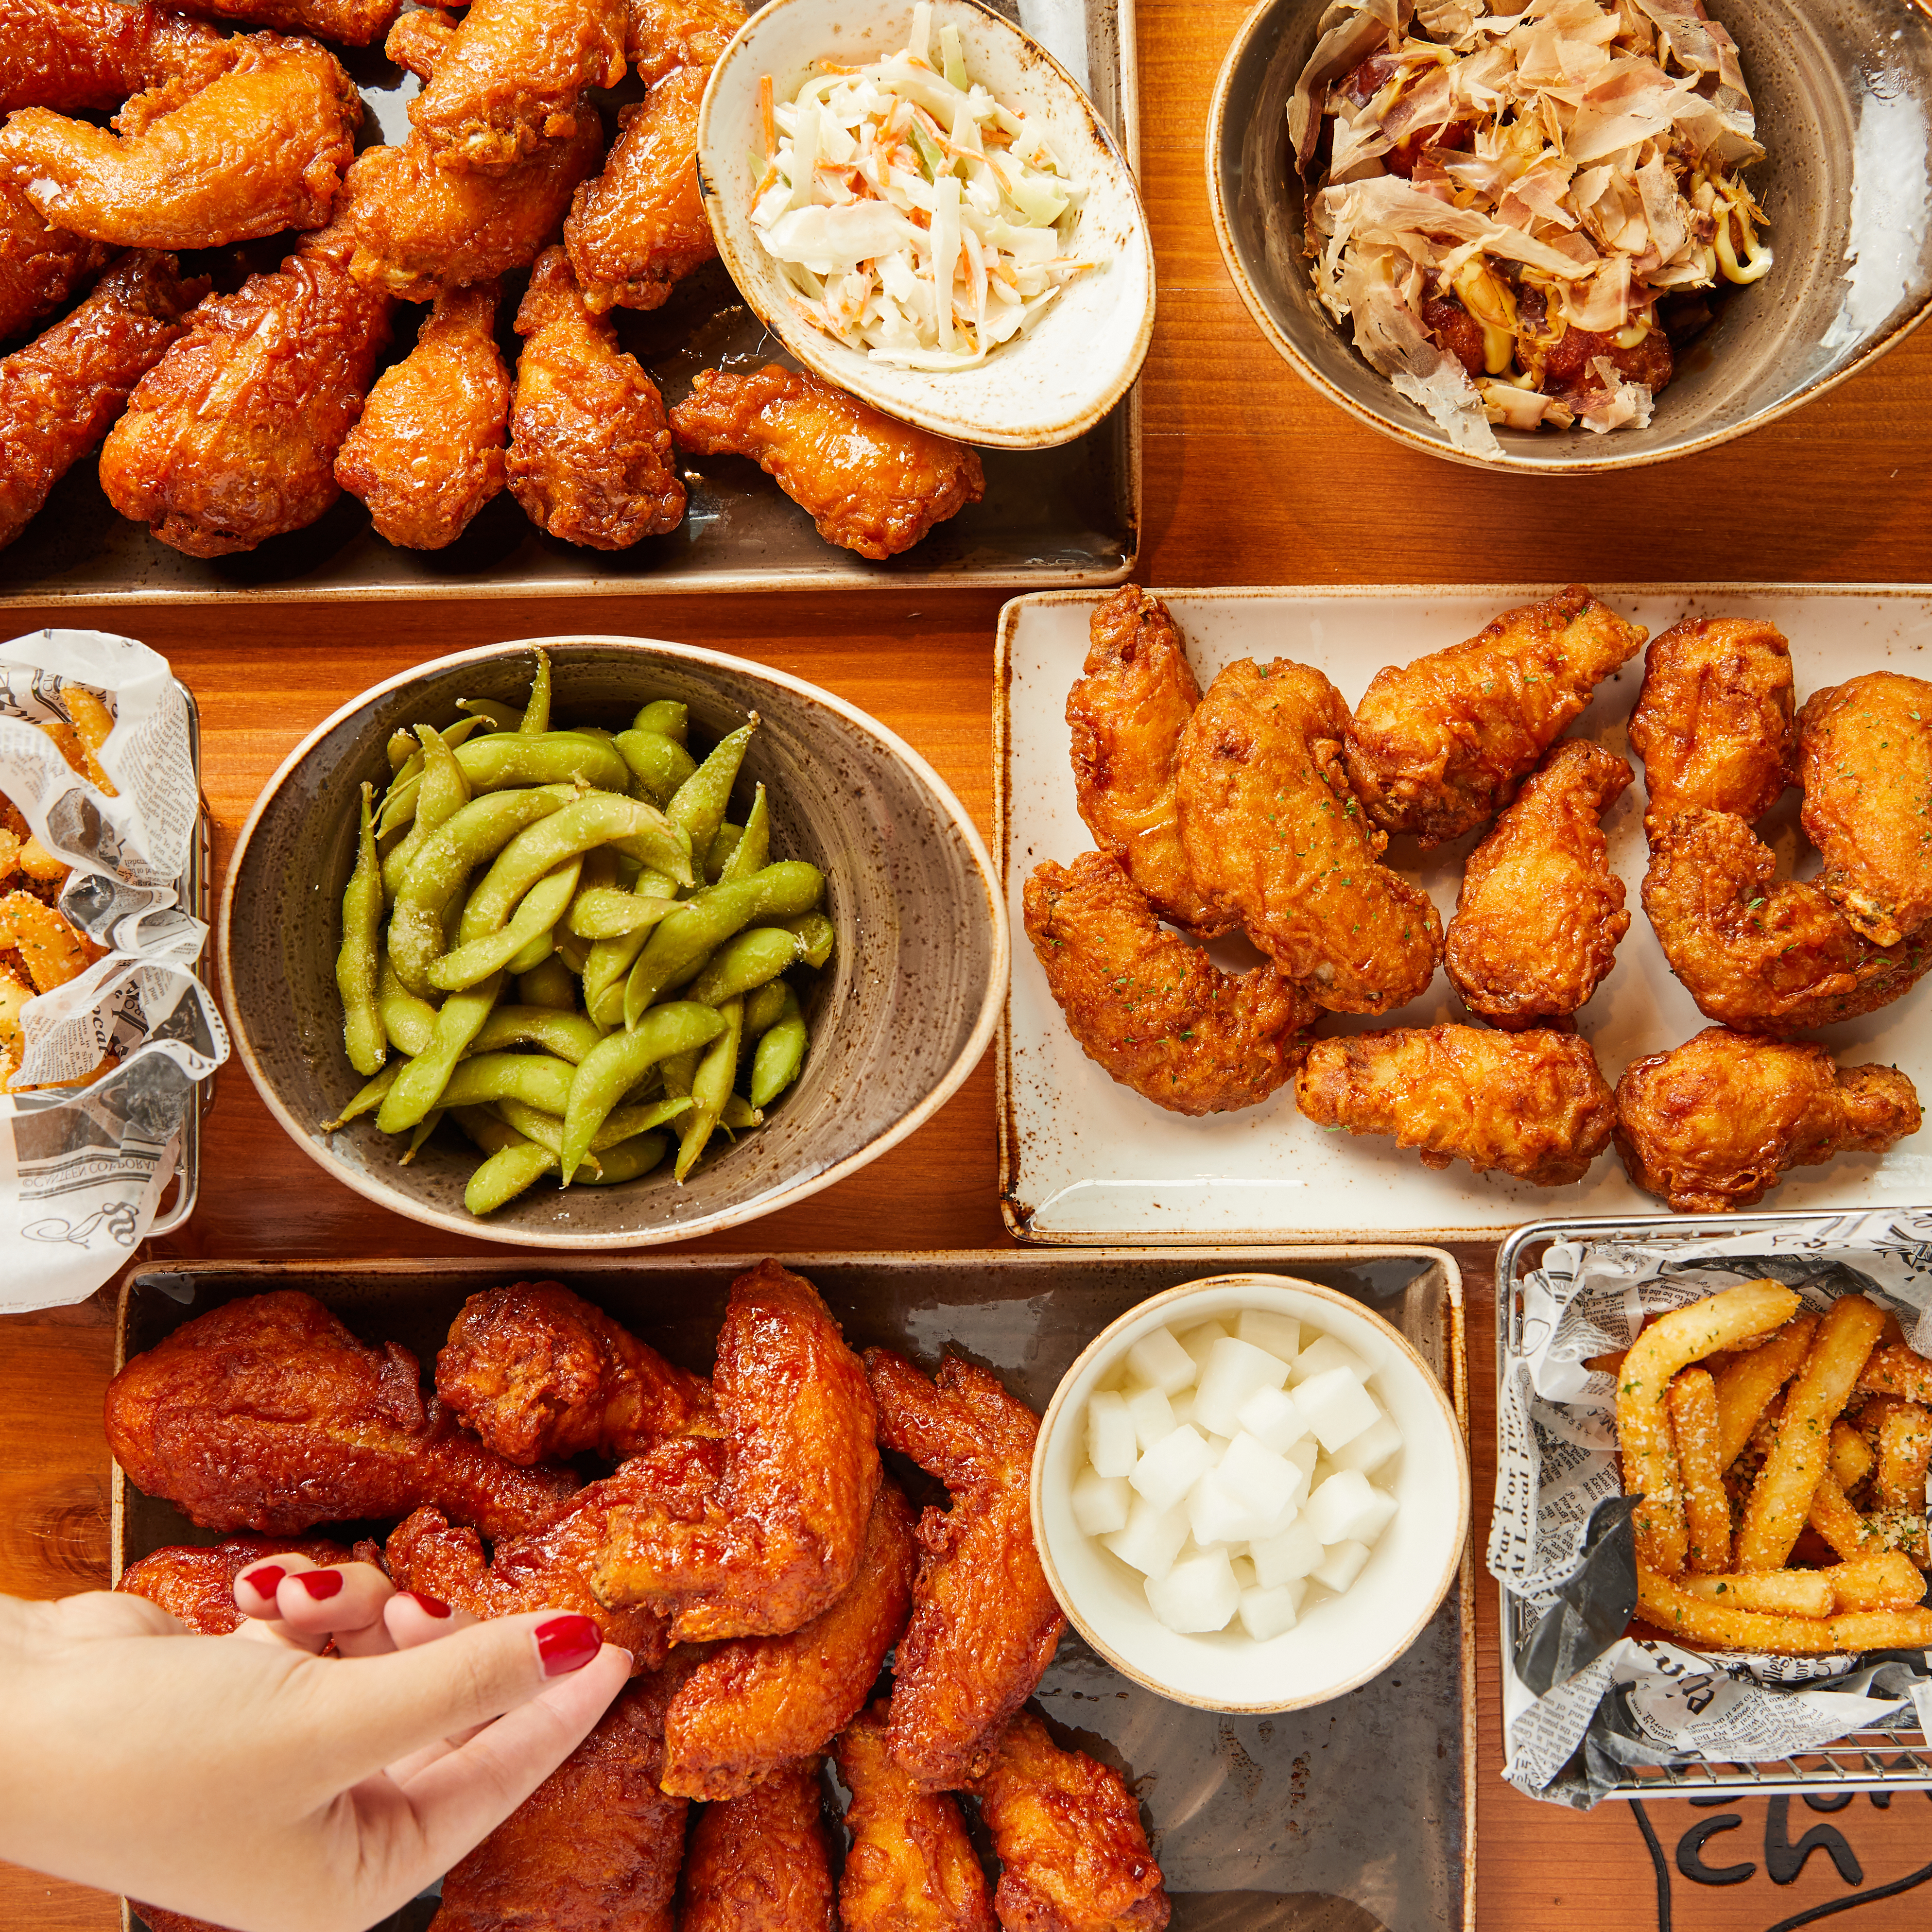 A wooden table is covered in plates of fried chicken, edamame, fries, and radish